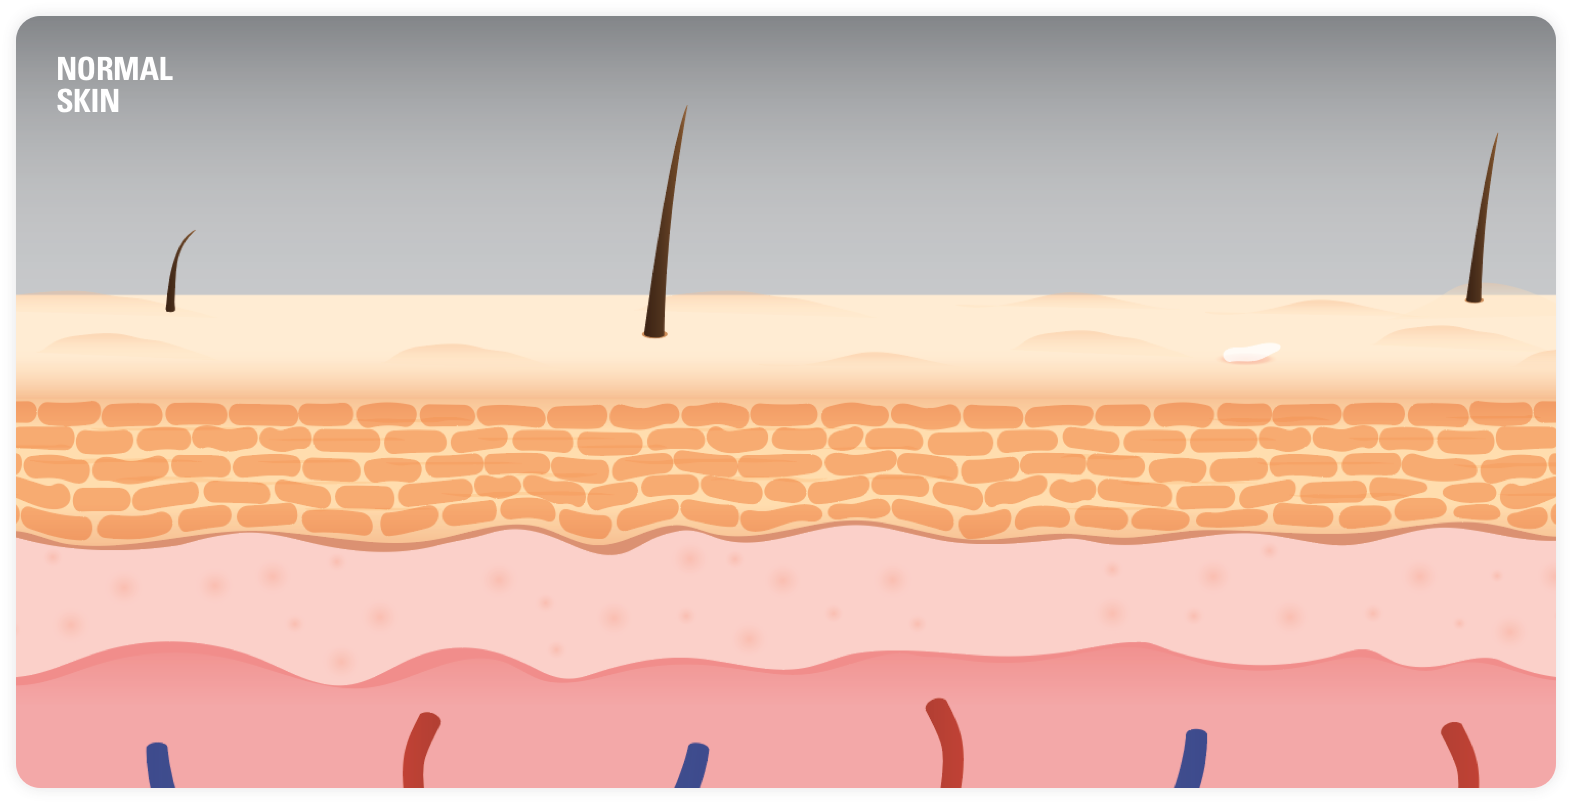 Image of Plaque Psoriasis Skin Layers